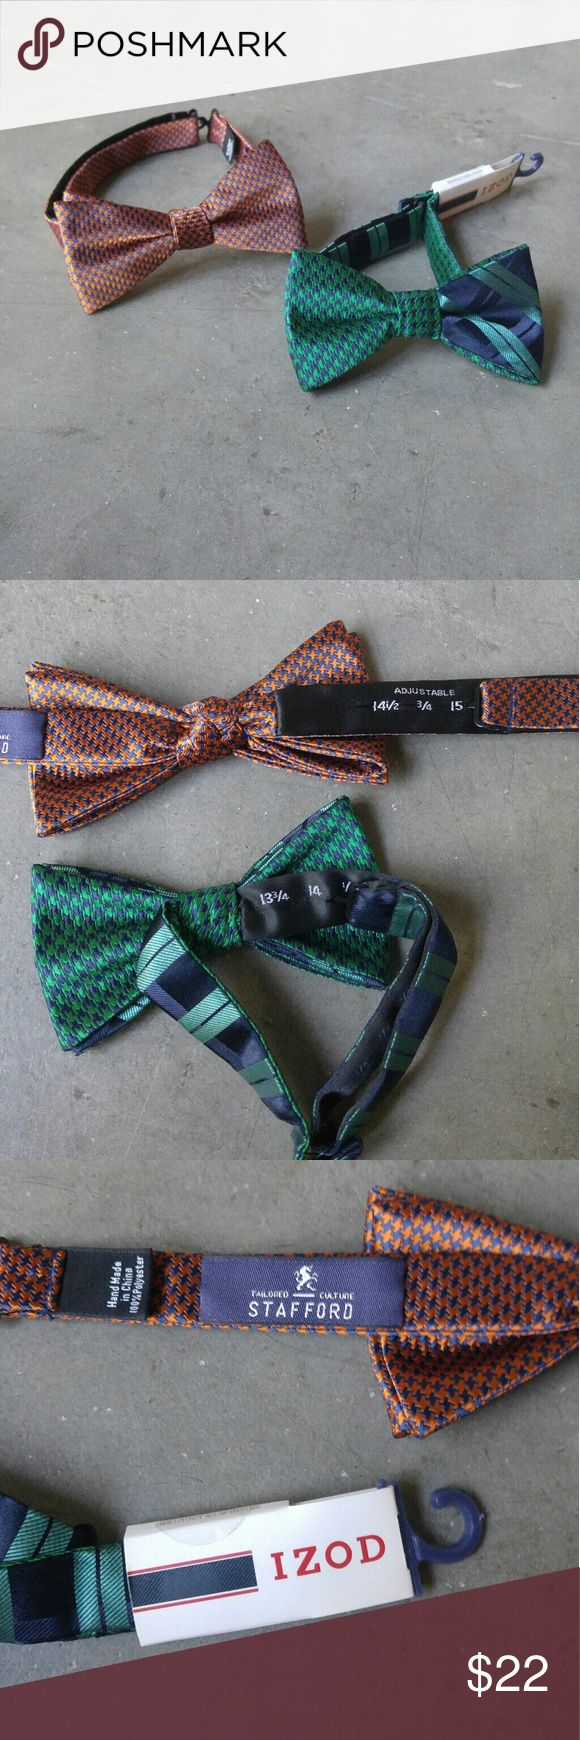 Pair of Orange and Green Bows Ties Orange bow tie by Stafford, green NWT bow tie from IZOD. Both in perfect condition. Adjustable neck lengths. Please ask any questions. No trades. Make a reasonable offer. Thanks! Stafford Accessories Ties